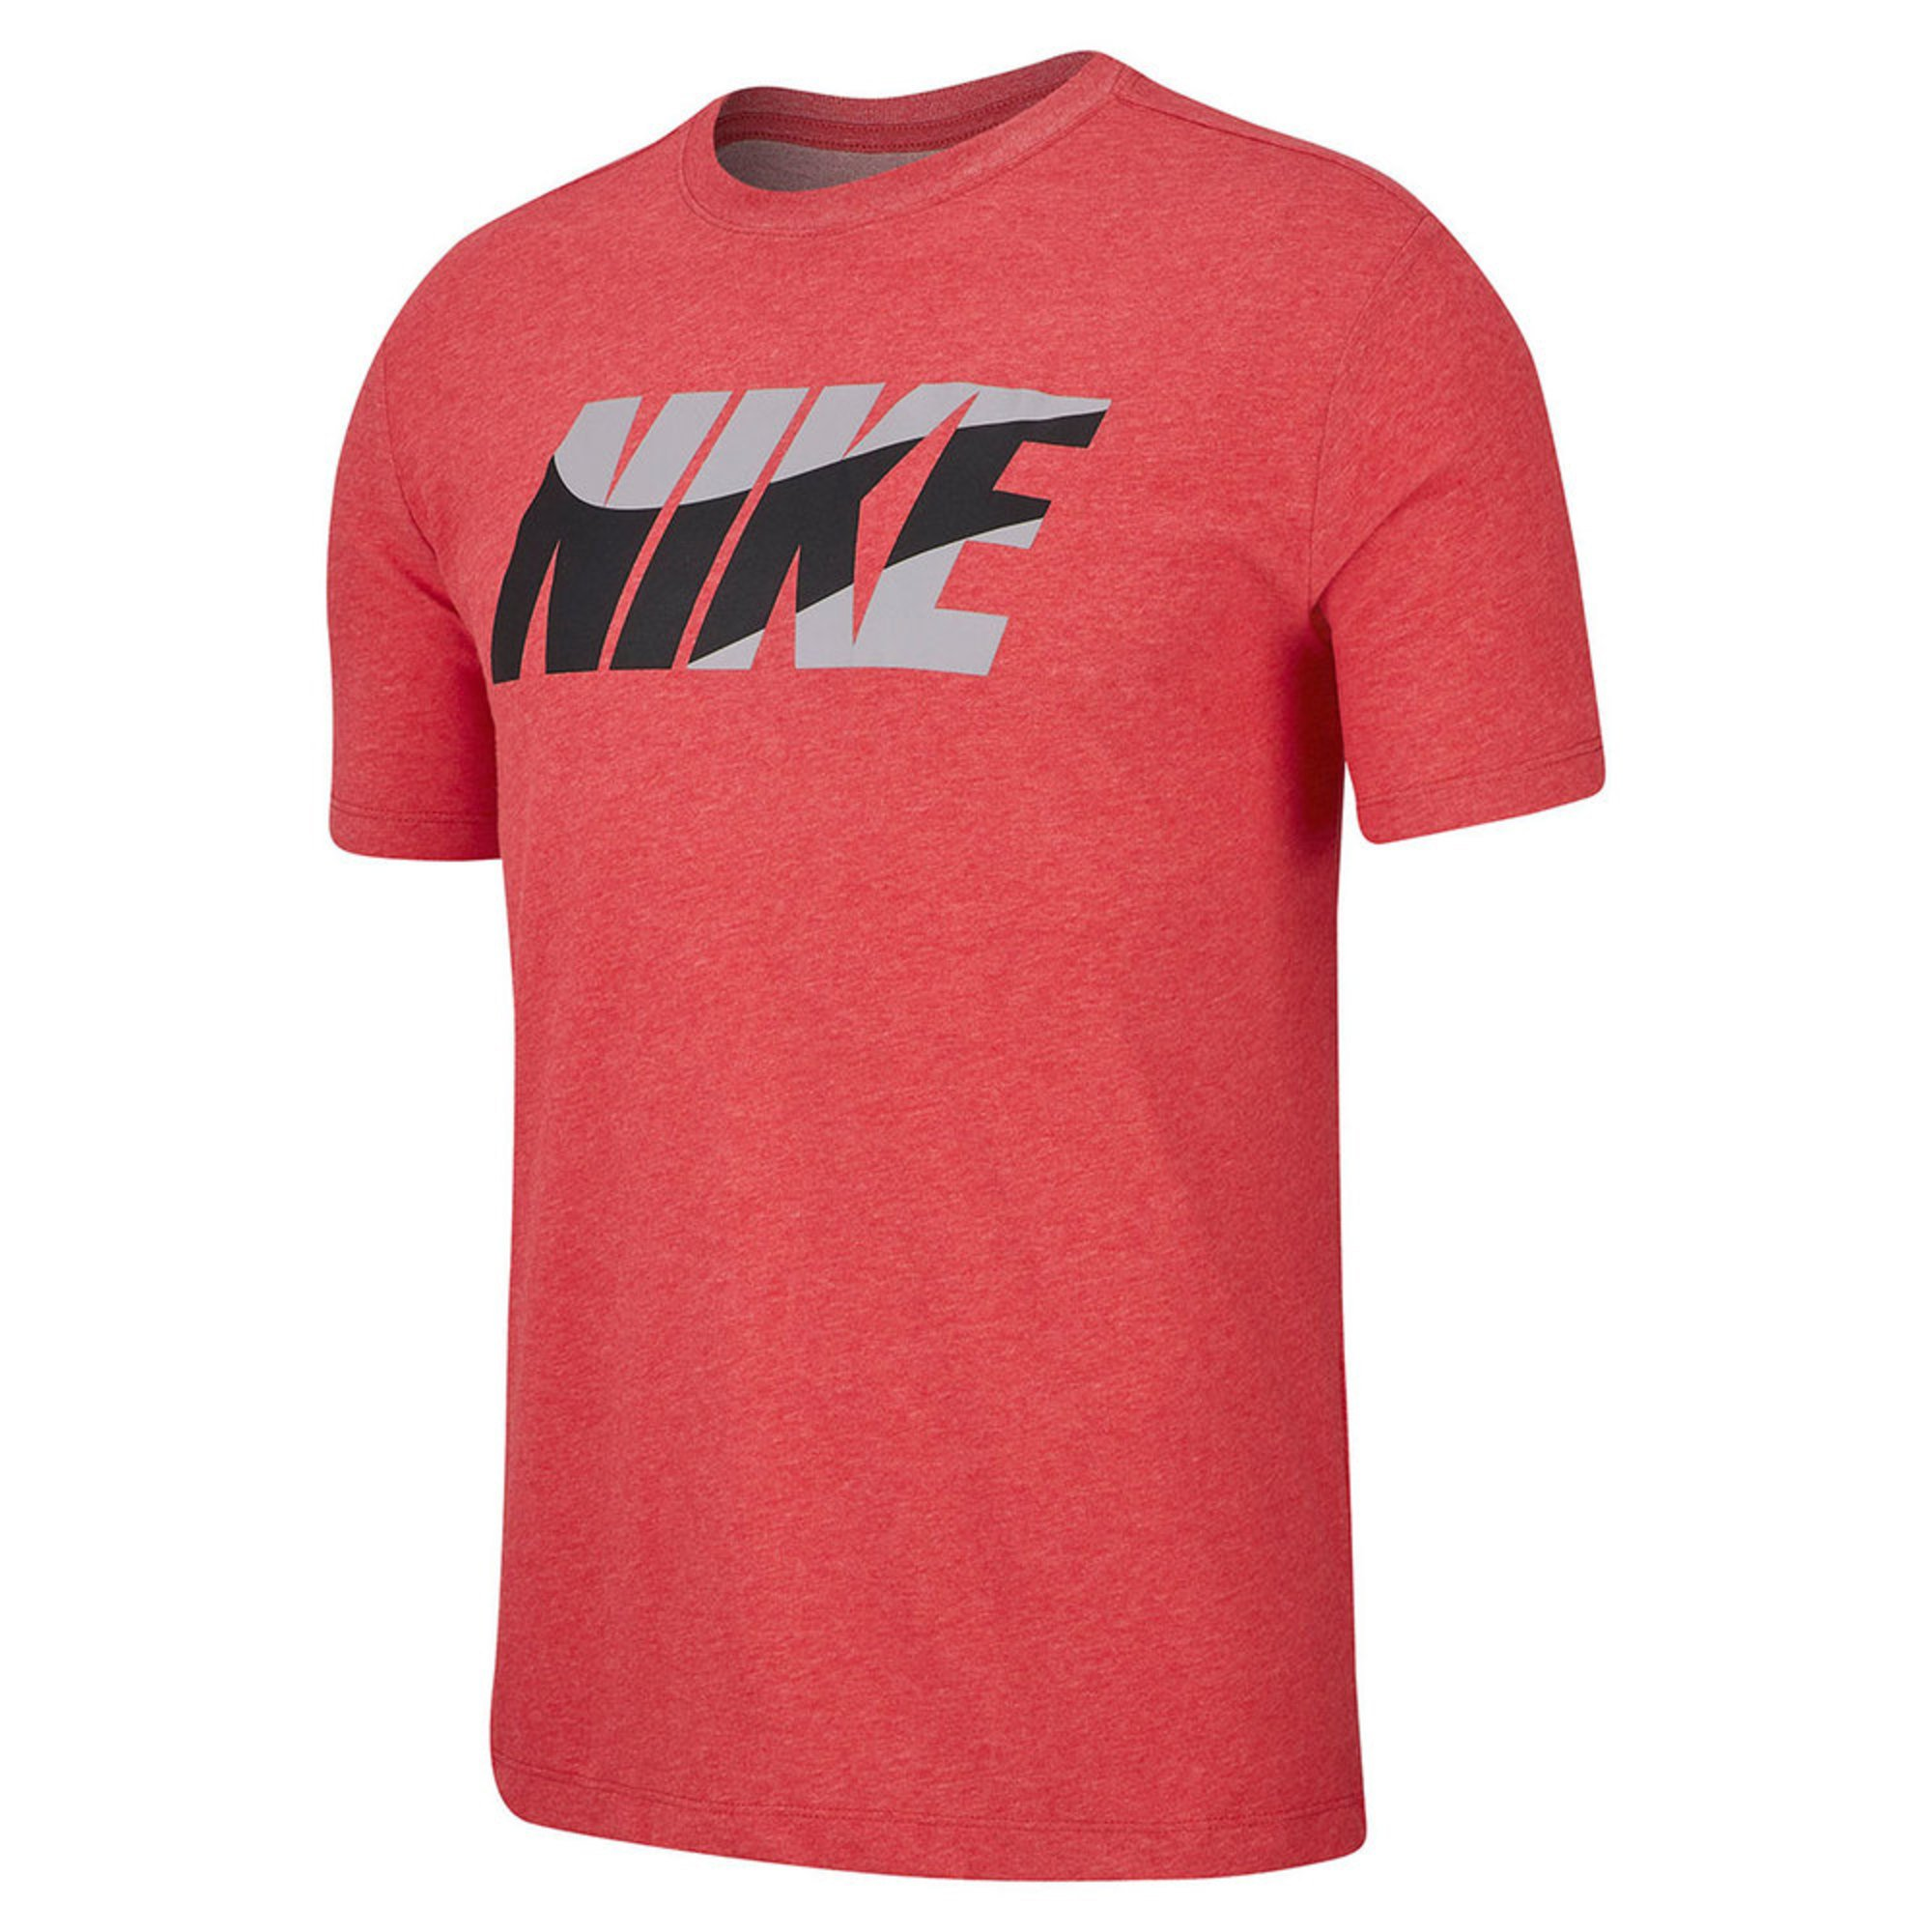 880cc8d3 Nike Men's Dri-fit Short Sleeve Dfc Block Tee | Active Tees ...